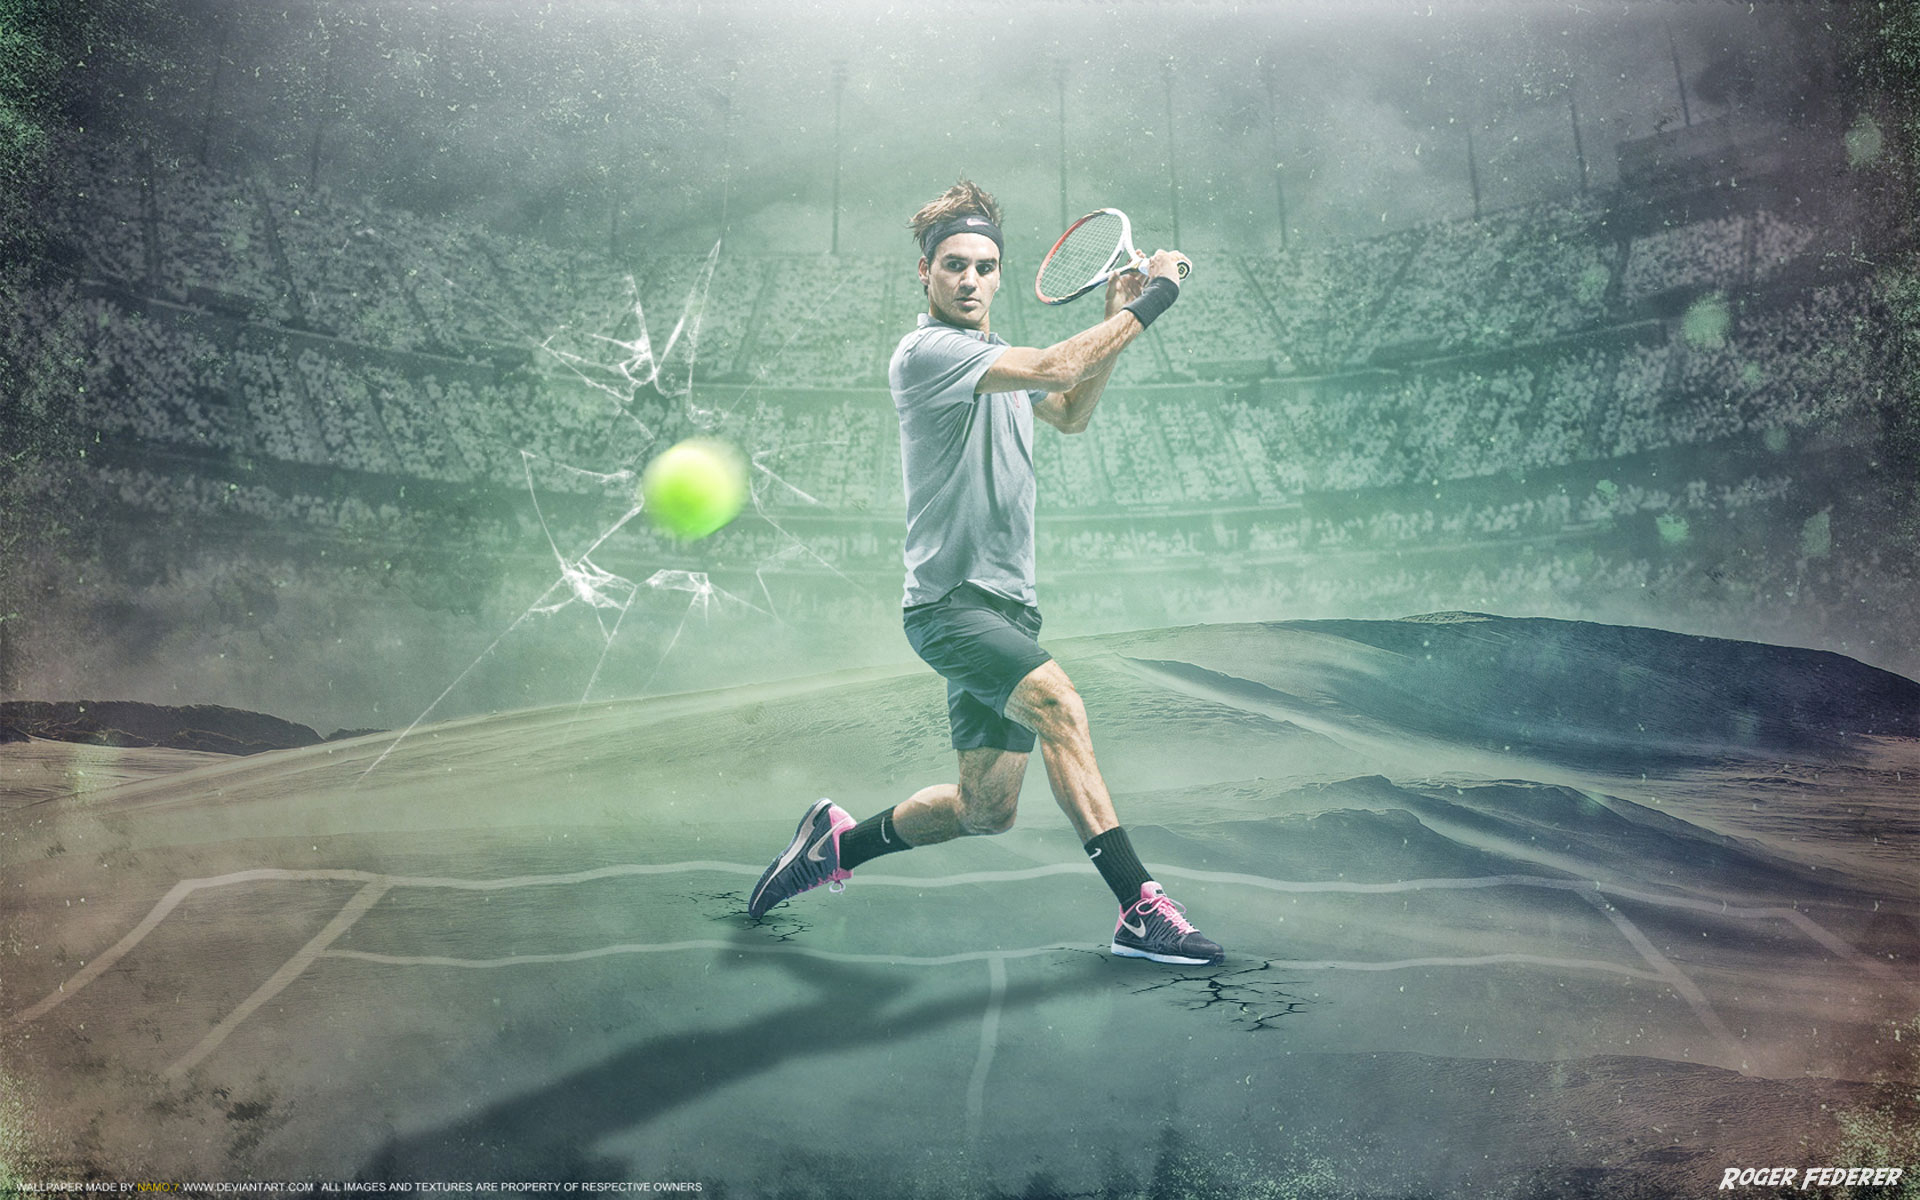 5 Roger Federer Hd Wallpapers  Backgrounds  Wallpaper Abyss